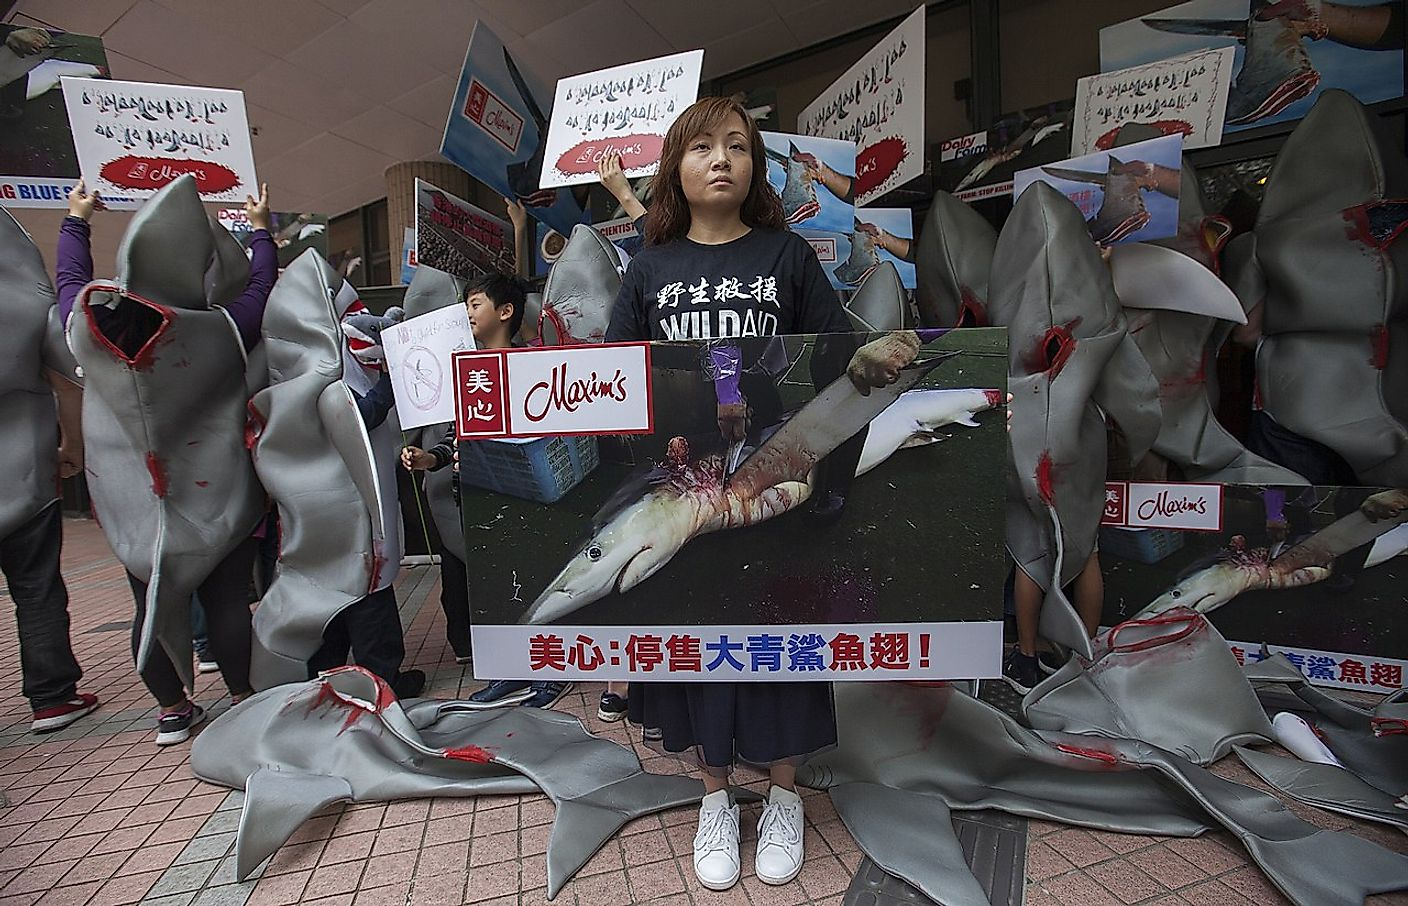 Shark fin protest an Maxim's restaurant at the University of Hong Kong 10 February 2018. Image credit: Socheid/Wikimedia.org